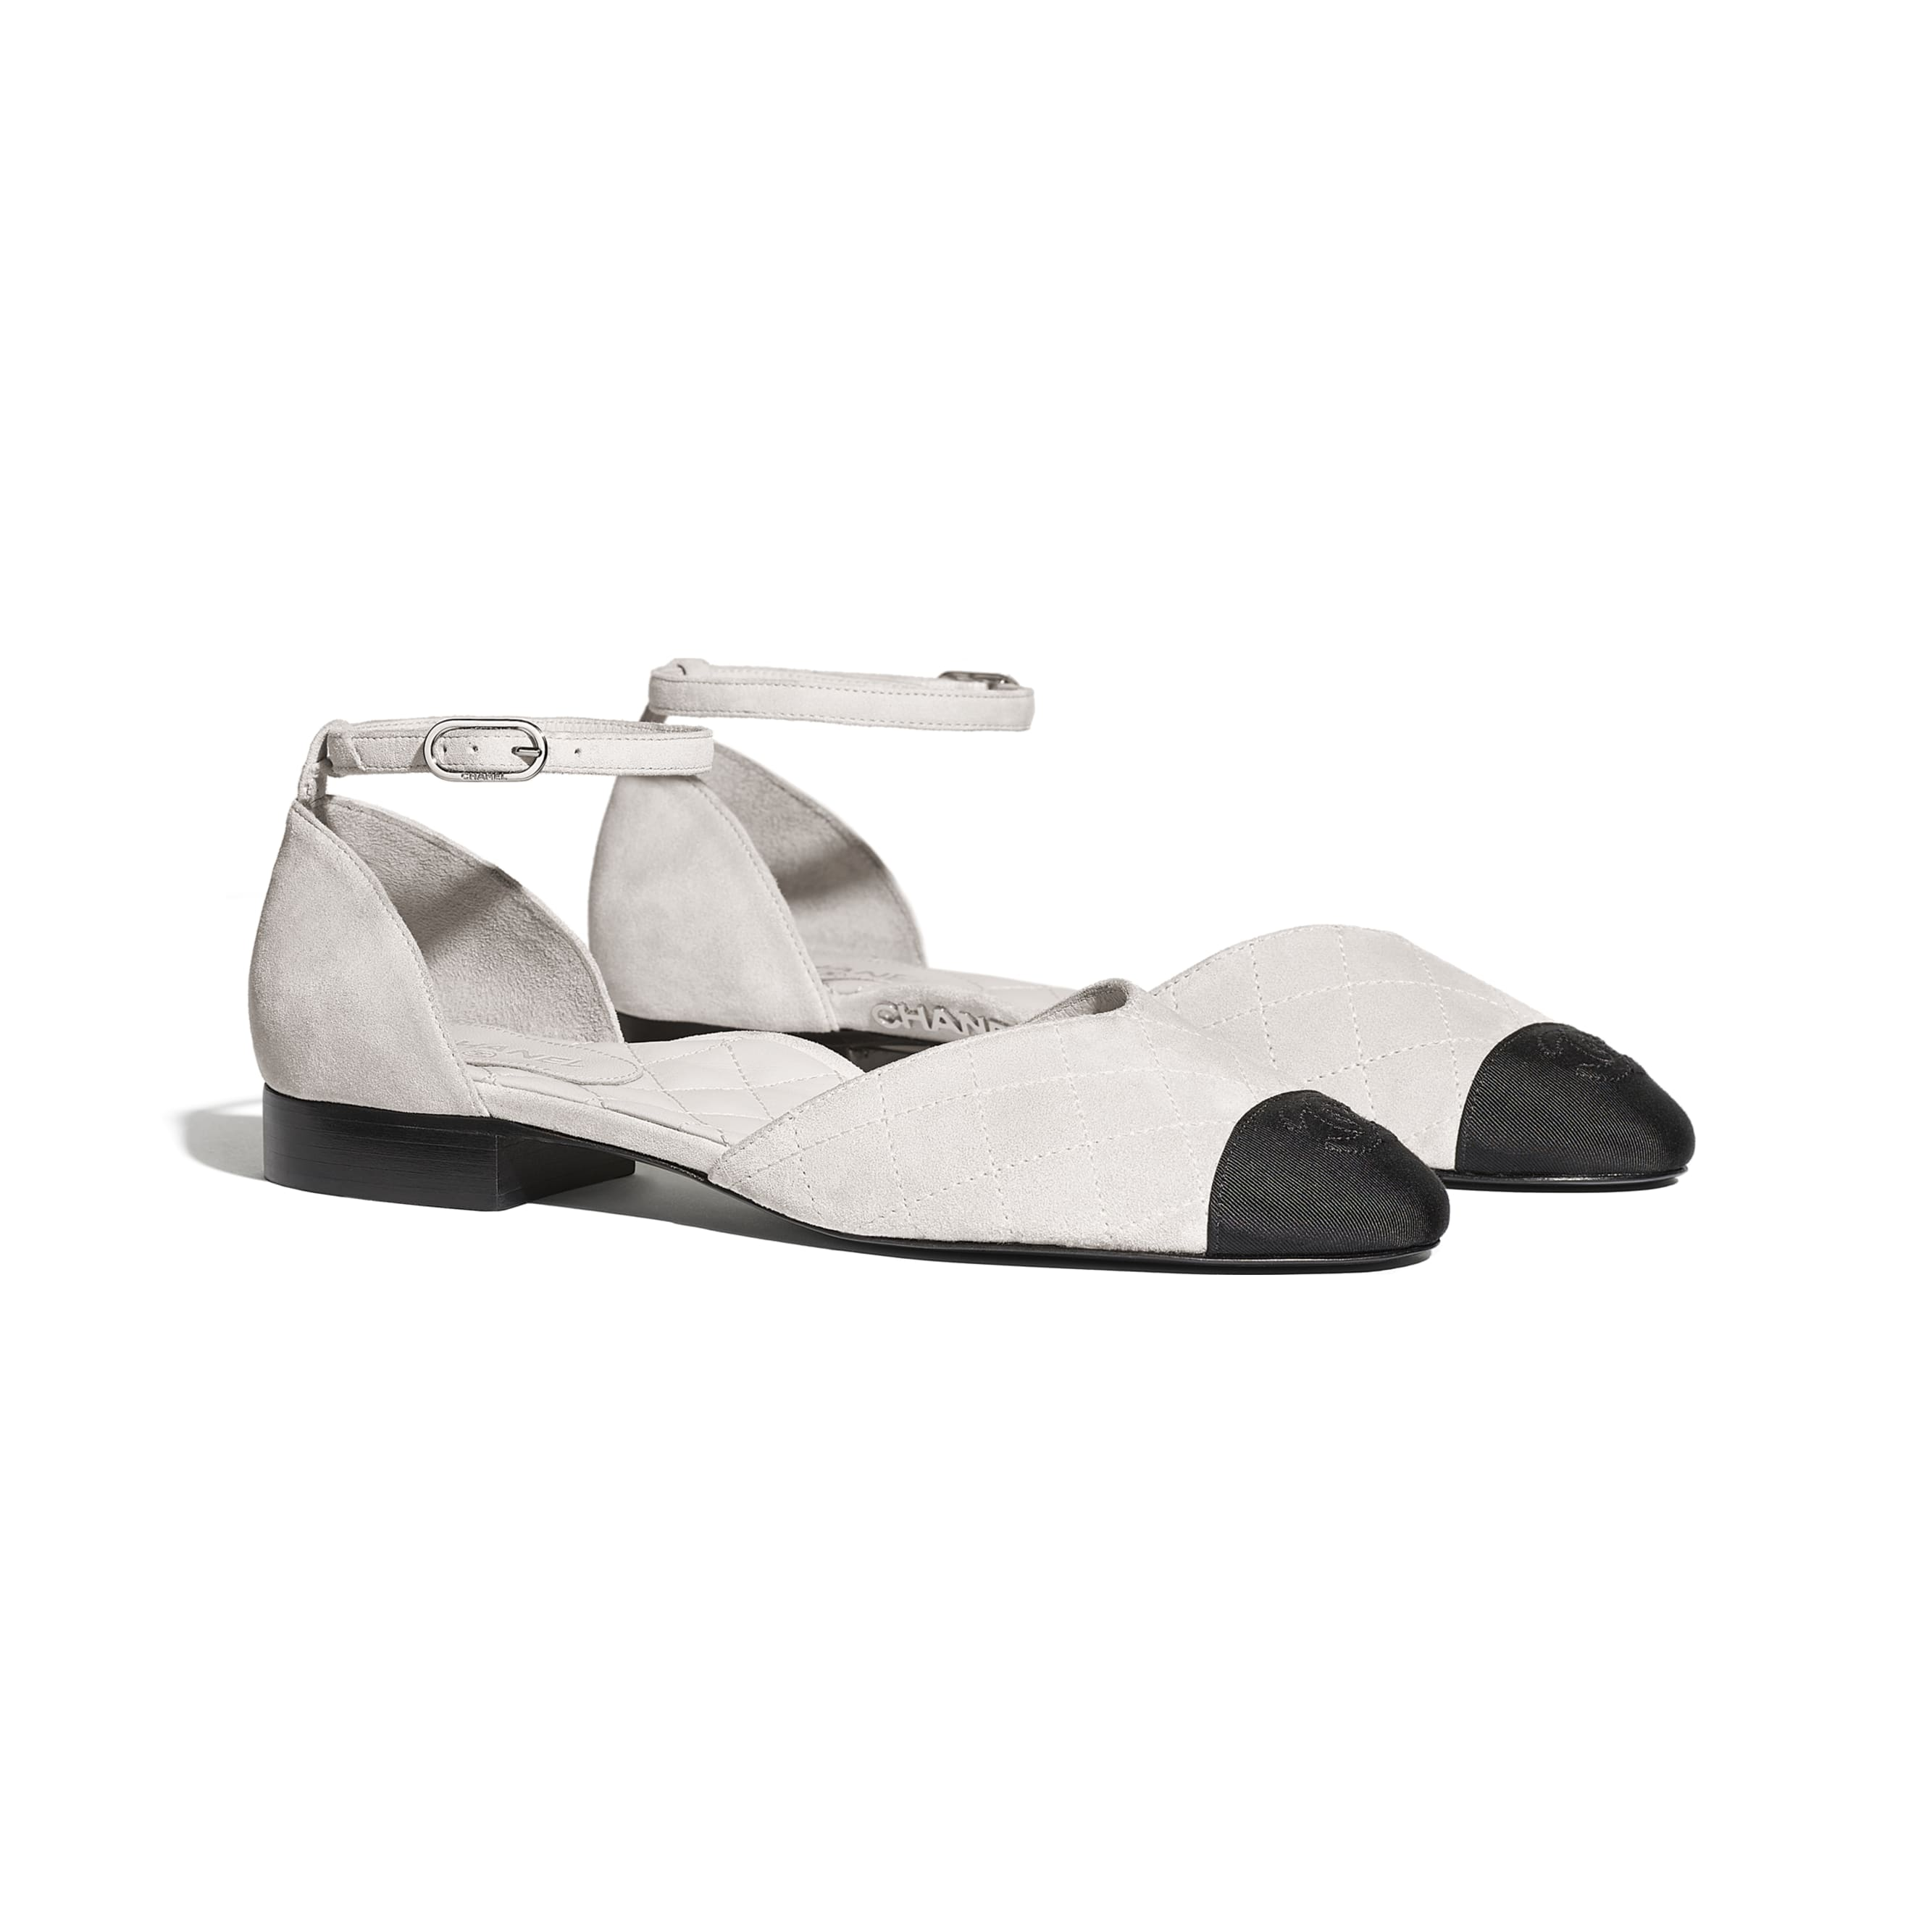 Mary Janes  - Light Grey & Black - Suede Calfskin & Grosgrain - Alternative view - see standard sized version